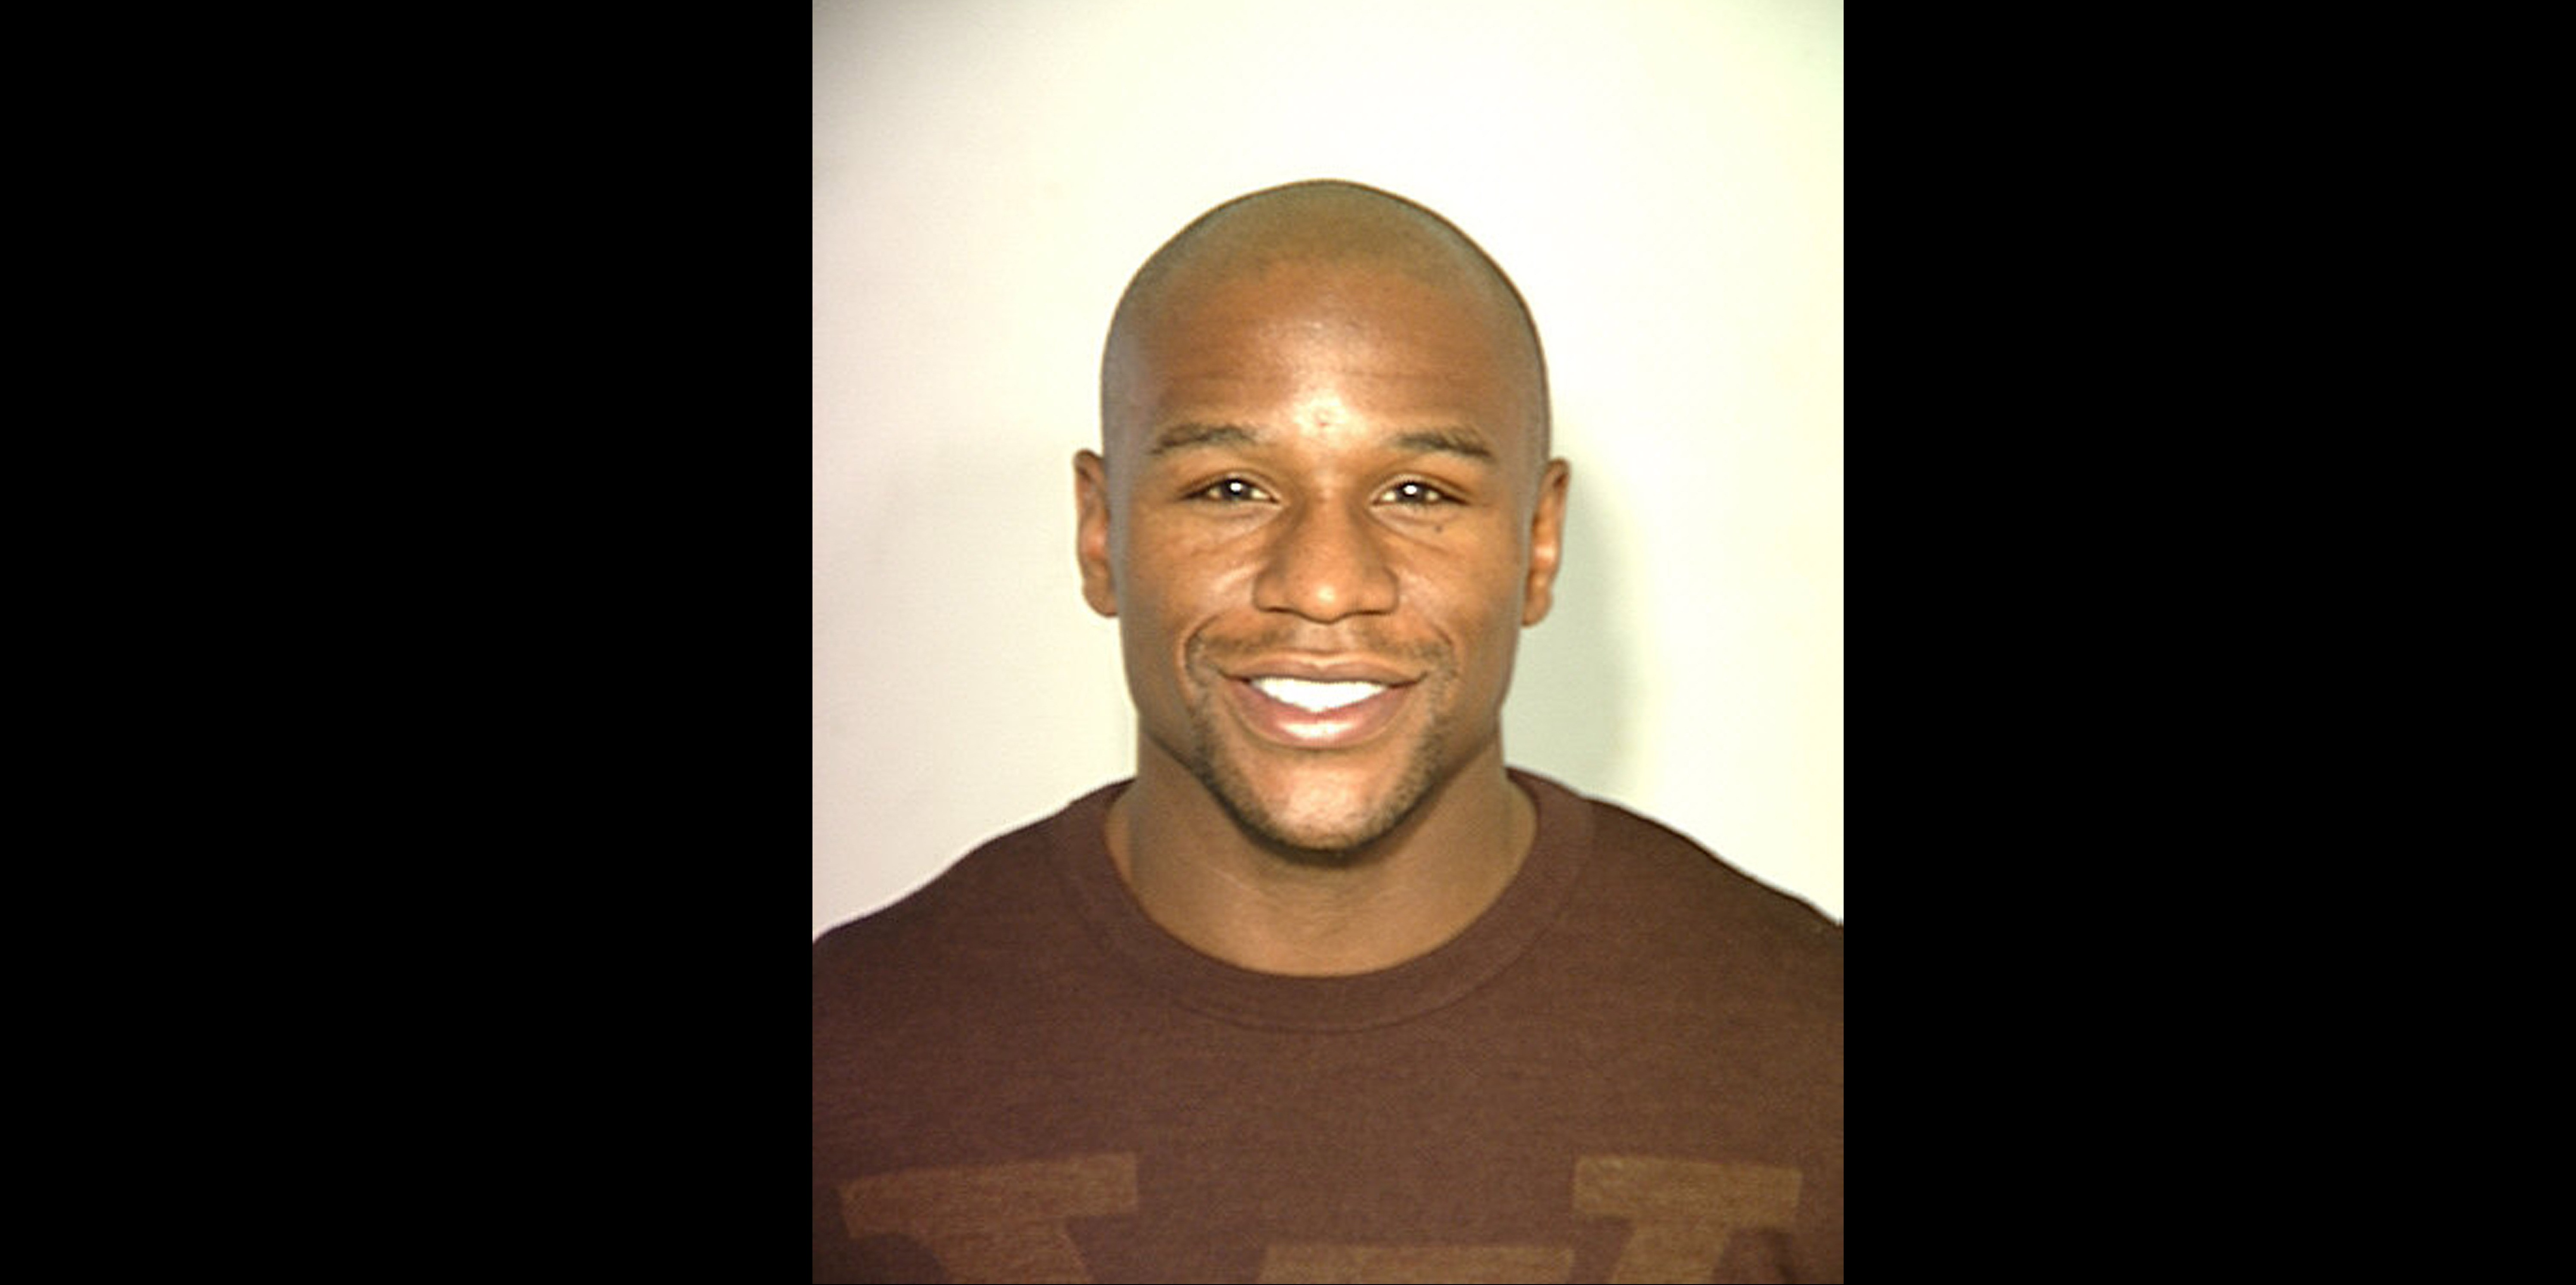 In this handout provided by the Las Vegas Police Department, boxer Floyd Mayweather Jr. poses for a mug shot in Las Vegas, Nevada.